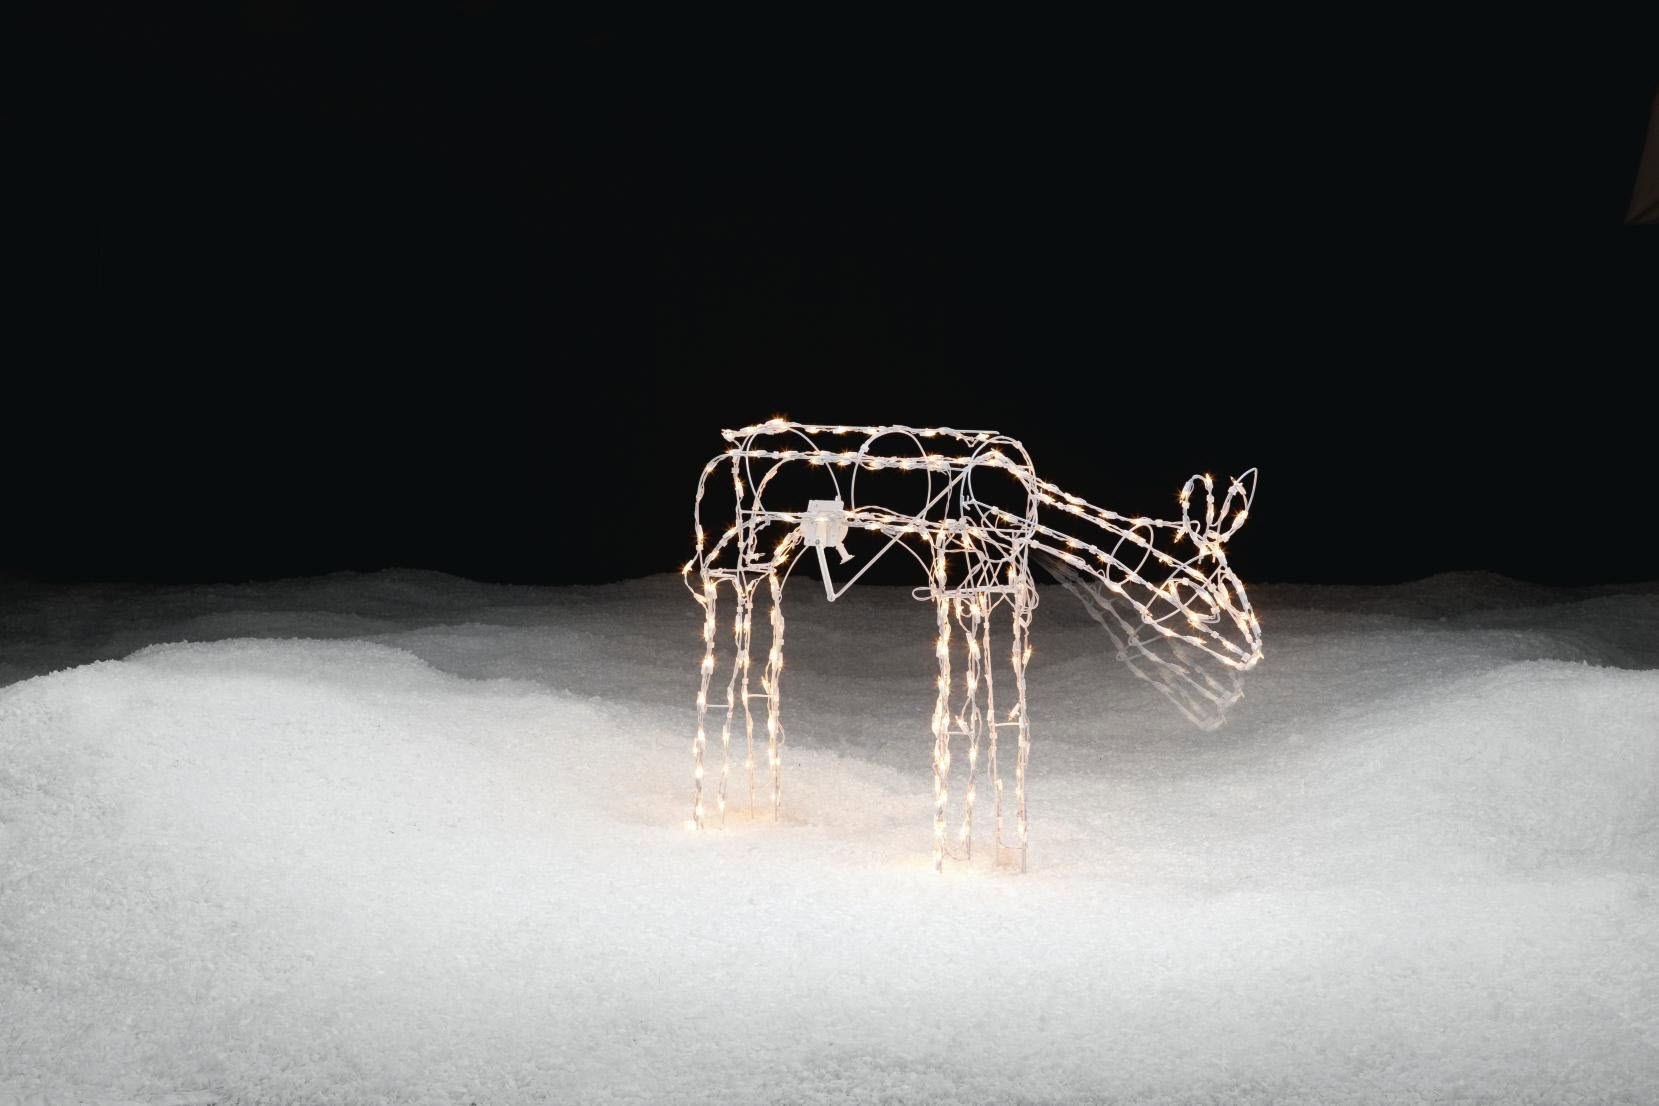 Trim A Home® 33in Lighted Animated White Wire Standing Deer Christmas Decoration